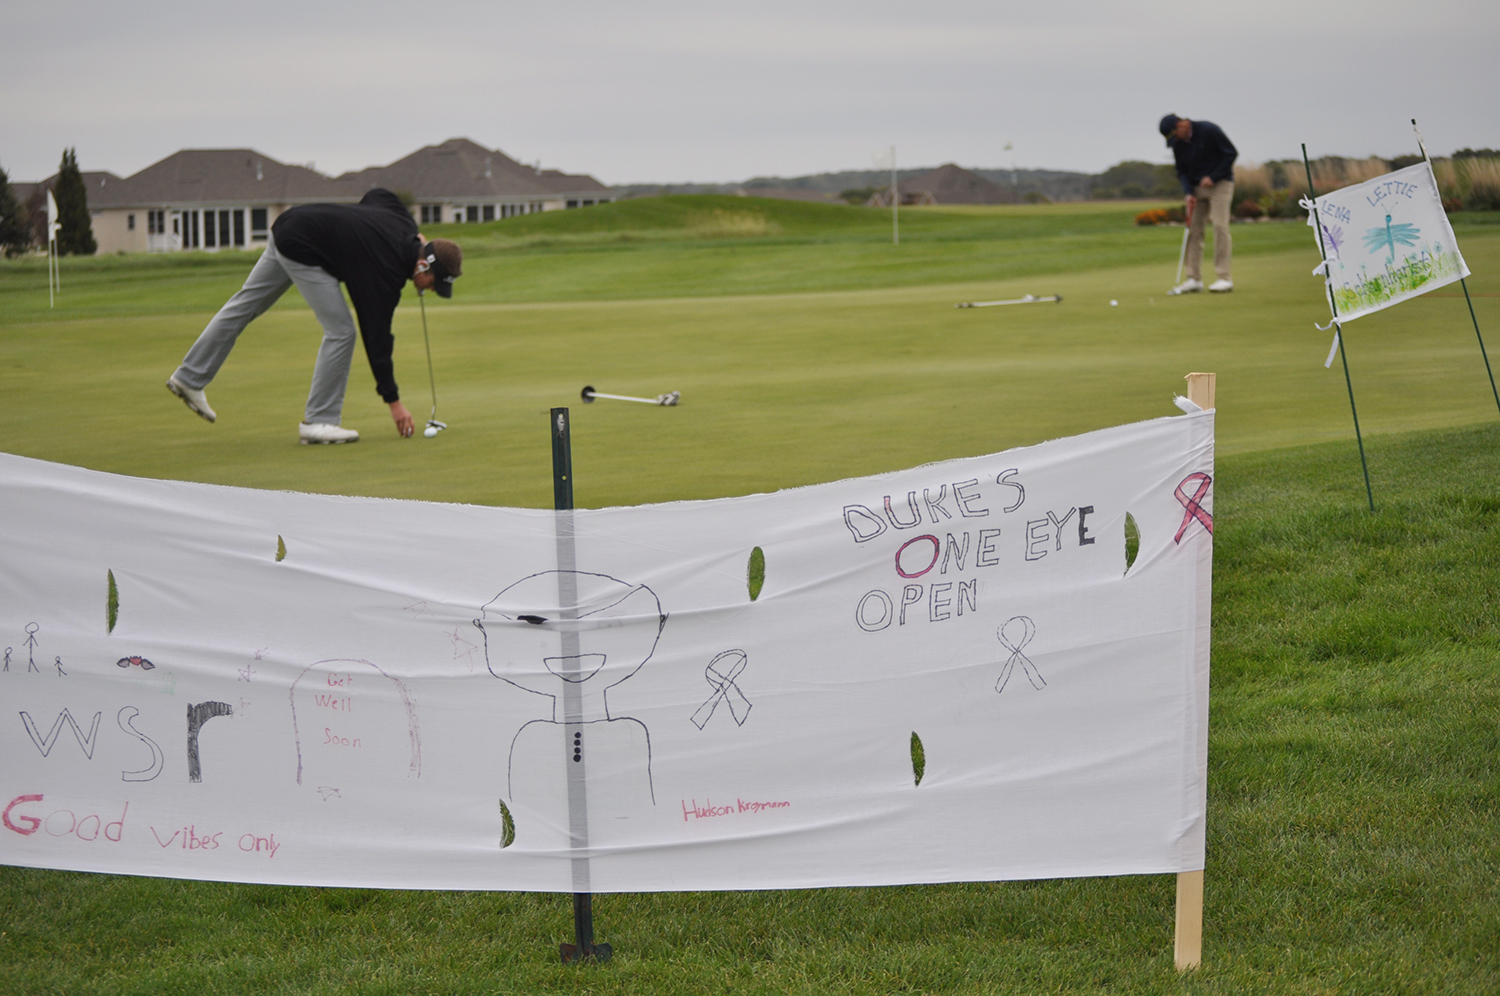 A banner made in honor of the kids at the Stead Family Children's Hospital waves in the wind at Dukie's One Eye Open, a charitable golf tournament in Waverly, Iowa, on Sept. 28.